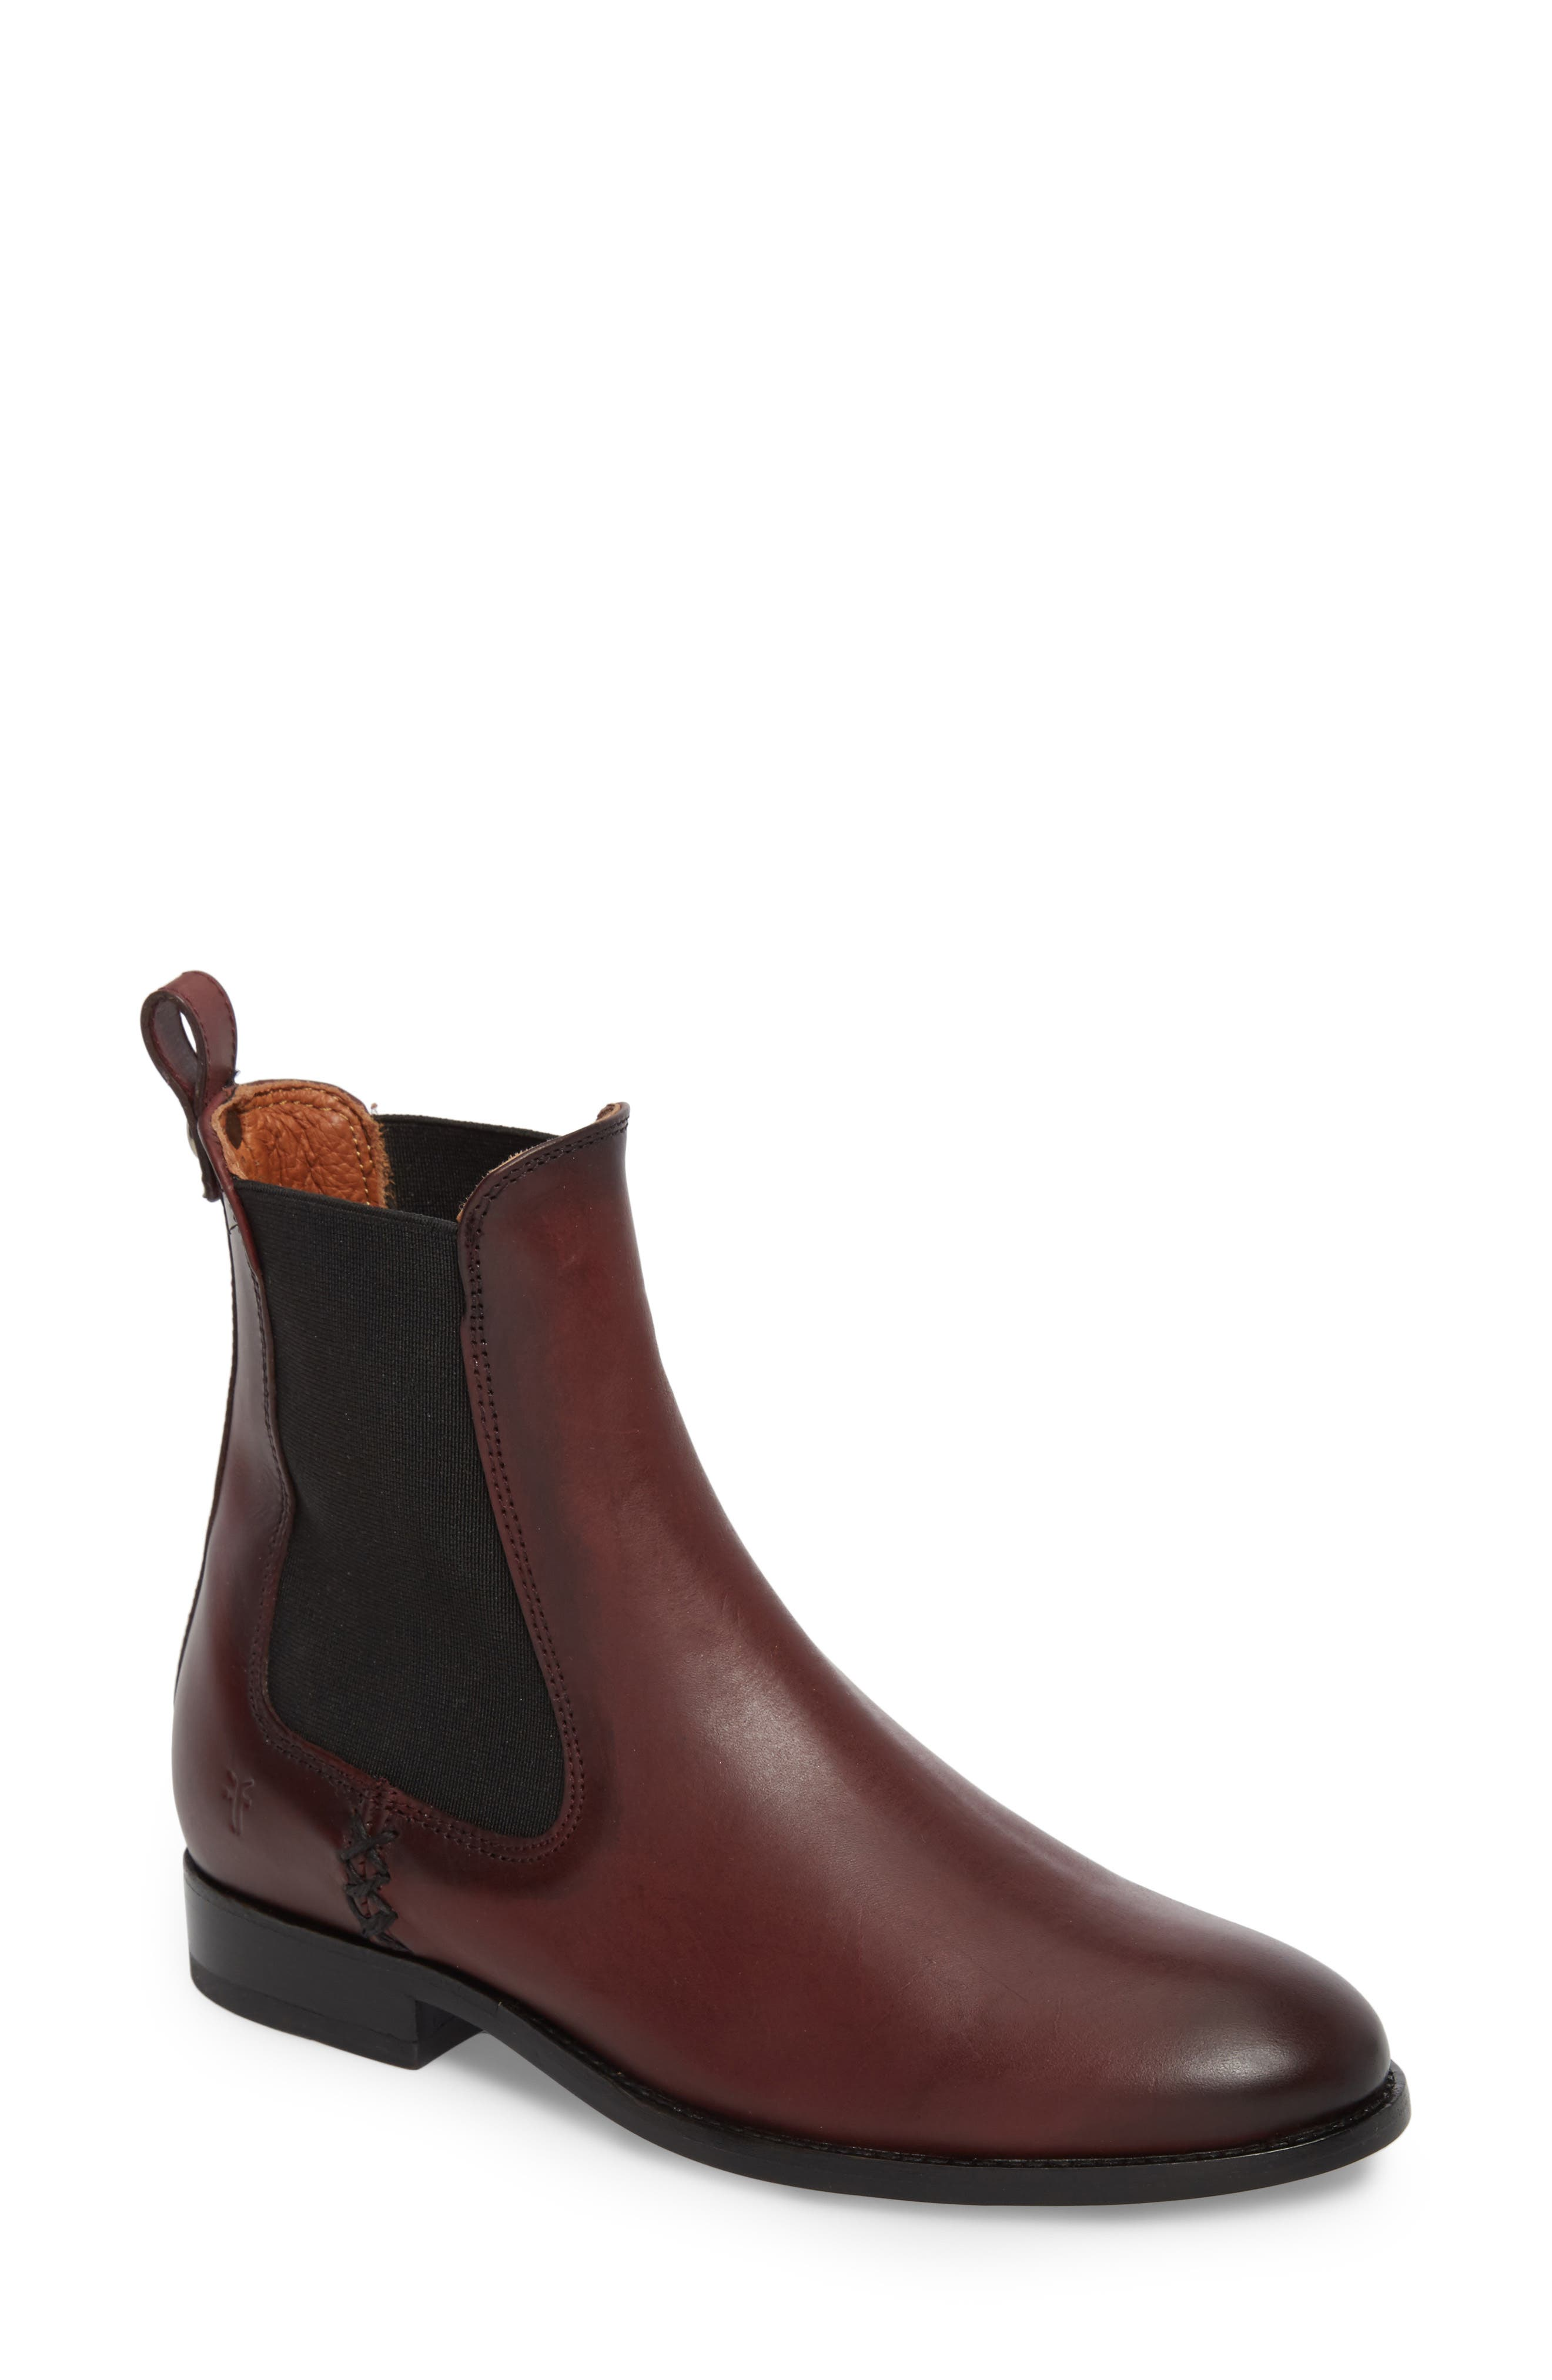 Melissa Chelsea Boot,                         Main,                         color, 930